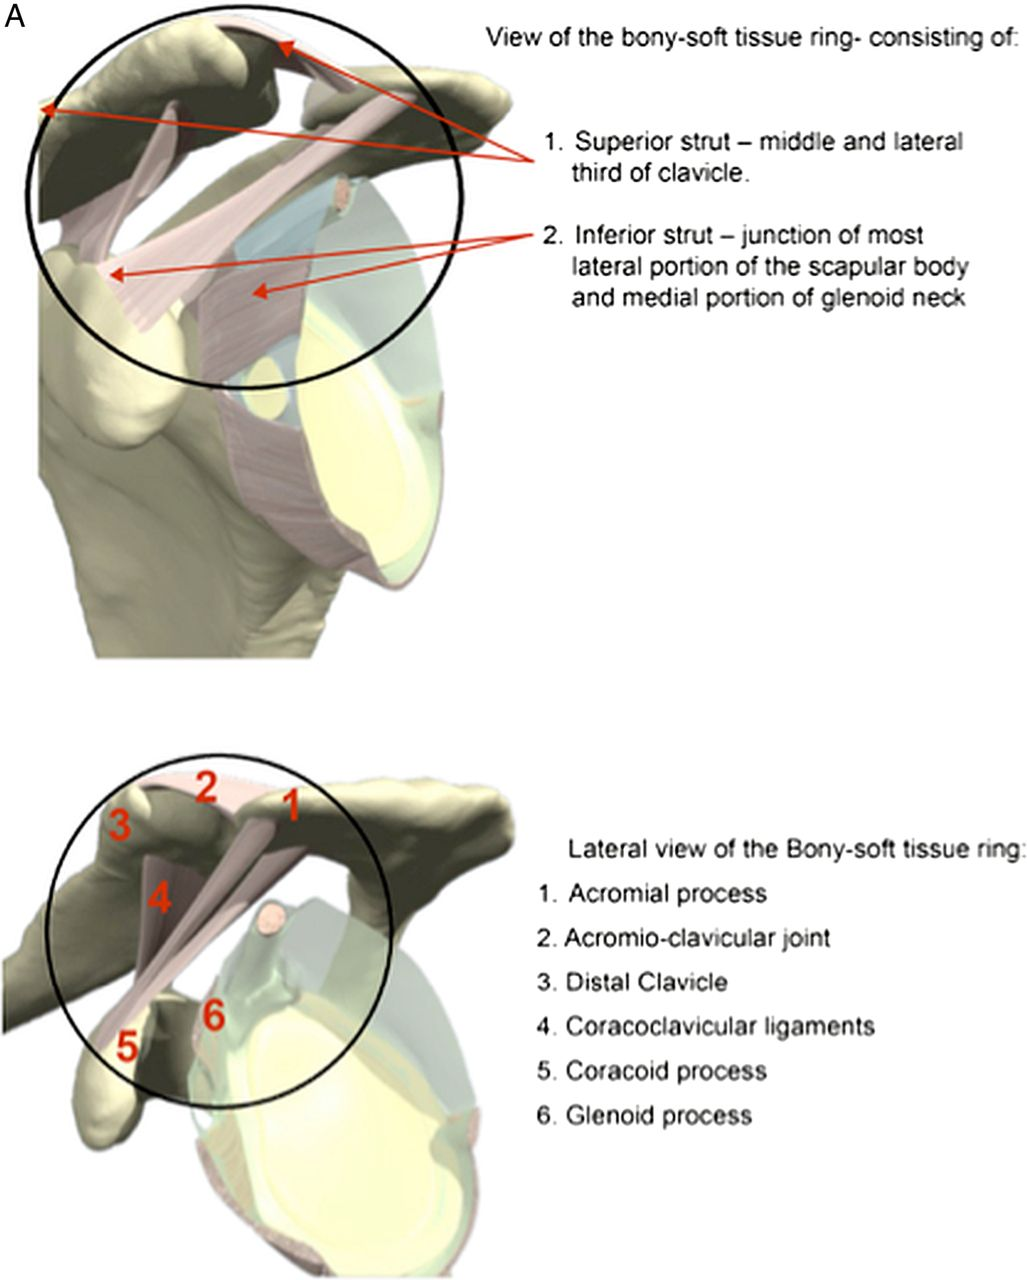 Complex Shoulder Girdle Injuries Following Mountain Bike Accidents